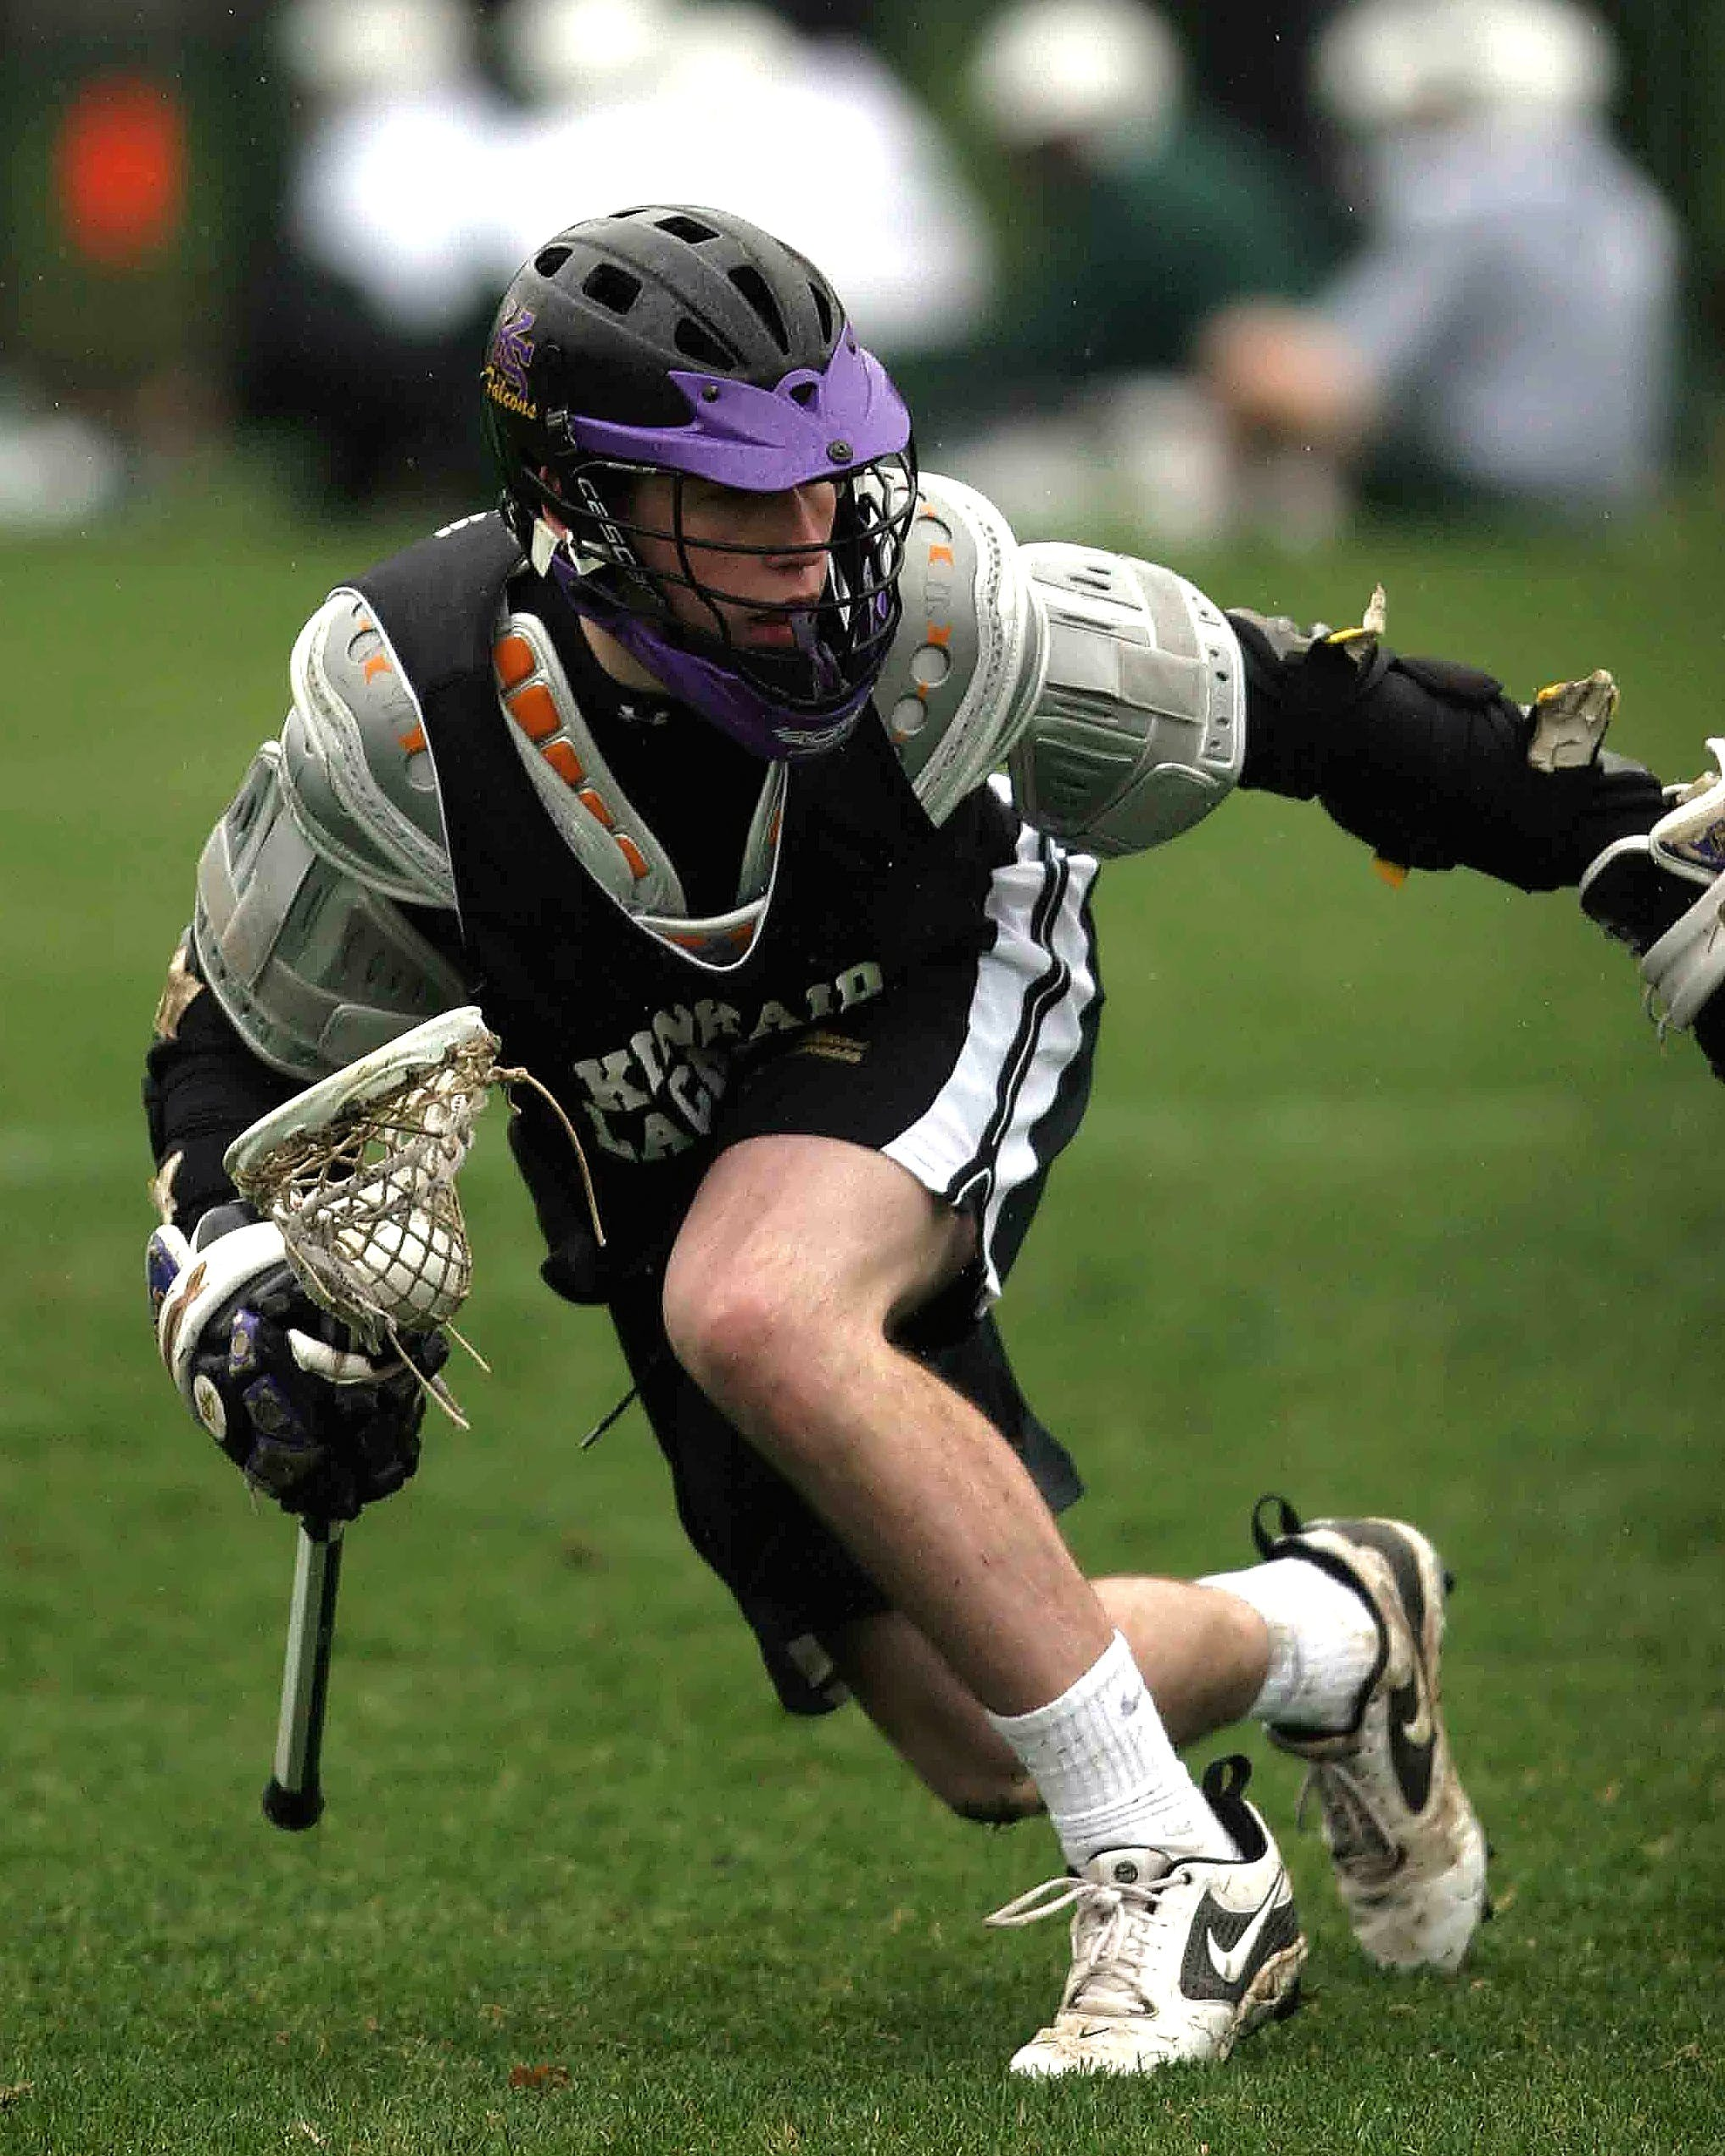 Person in Black Sports Jersey Playing Lacrosse